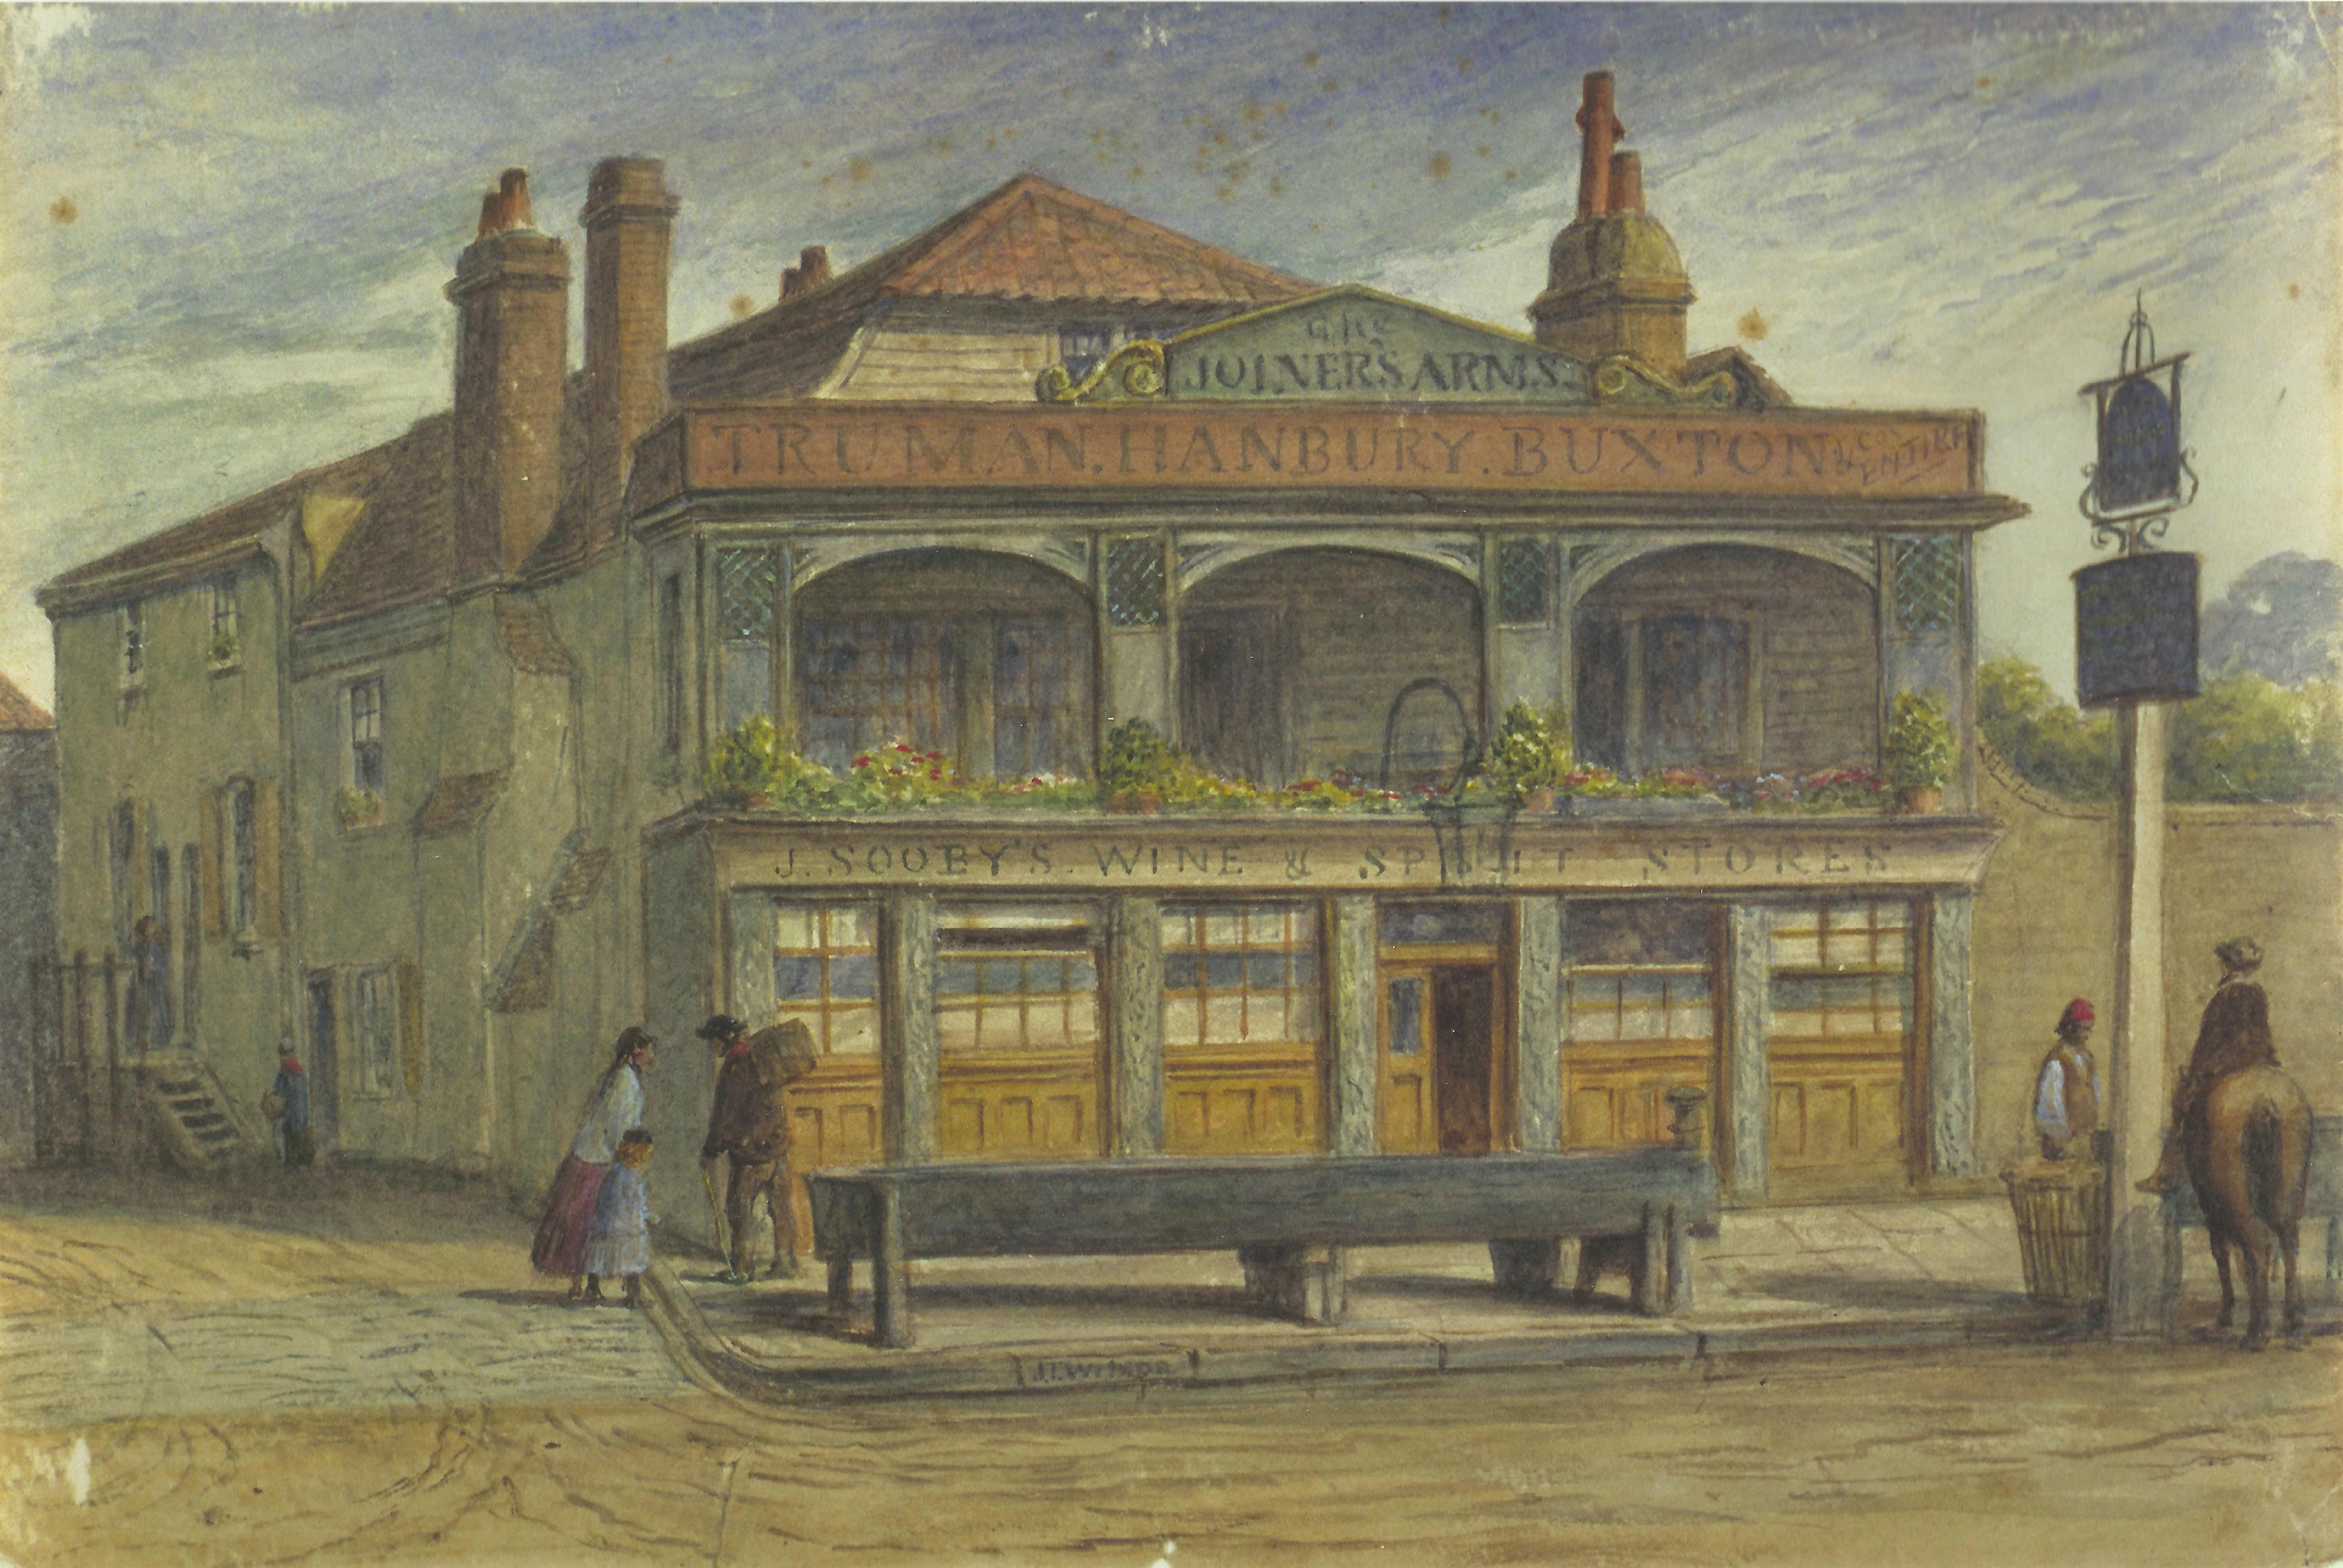 Joiners' Arms Inn by JT Wilson City, 1850, City of London Metropolitan Archives